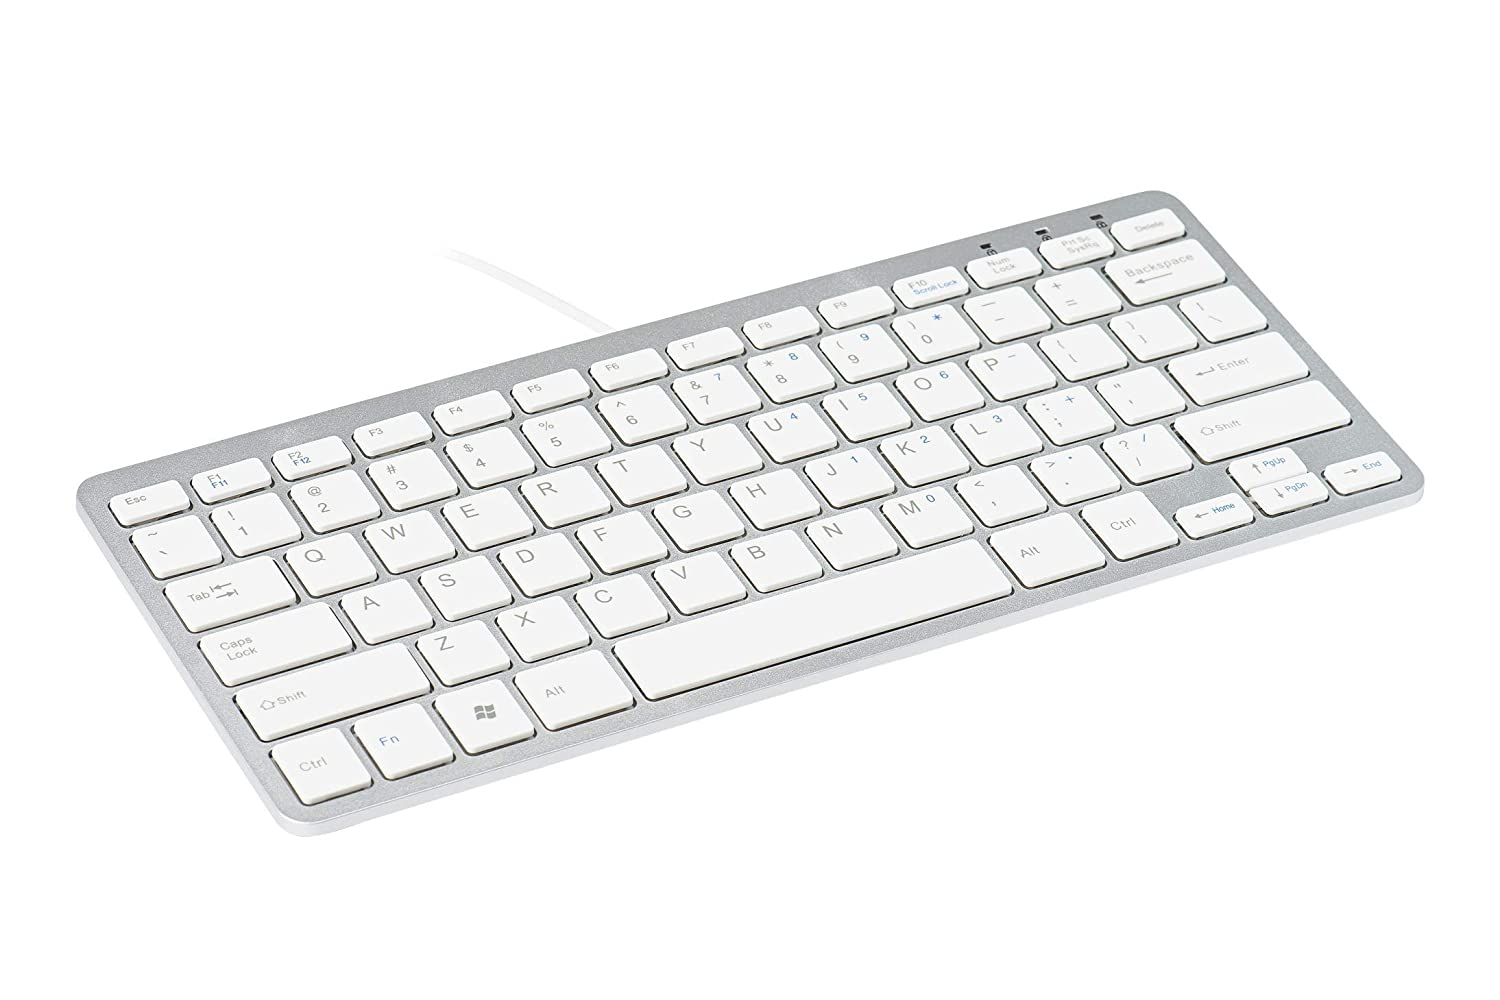 TEXTORM COMPACT SLIM SILVER KEYBOARD WINDOWS VISTA DRIVER